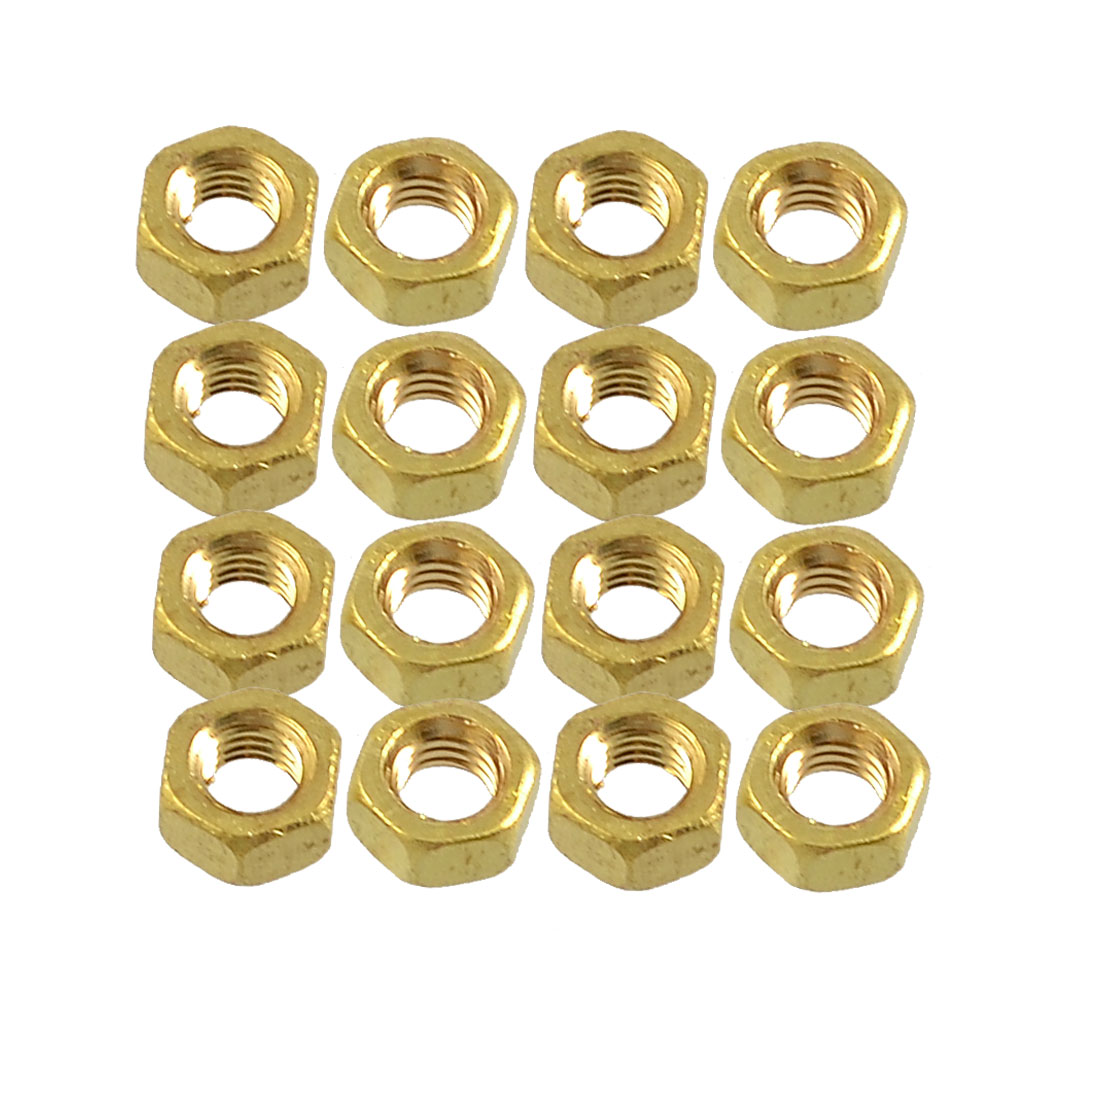 16 Pcs Solid Brass M5 5mm Dia Thread Hex Head Screw Nuts